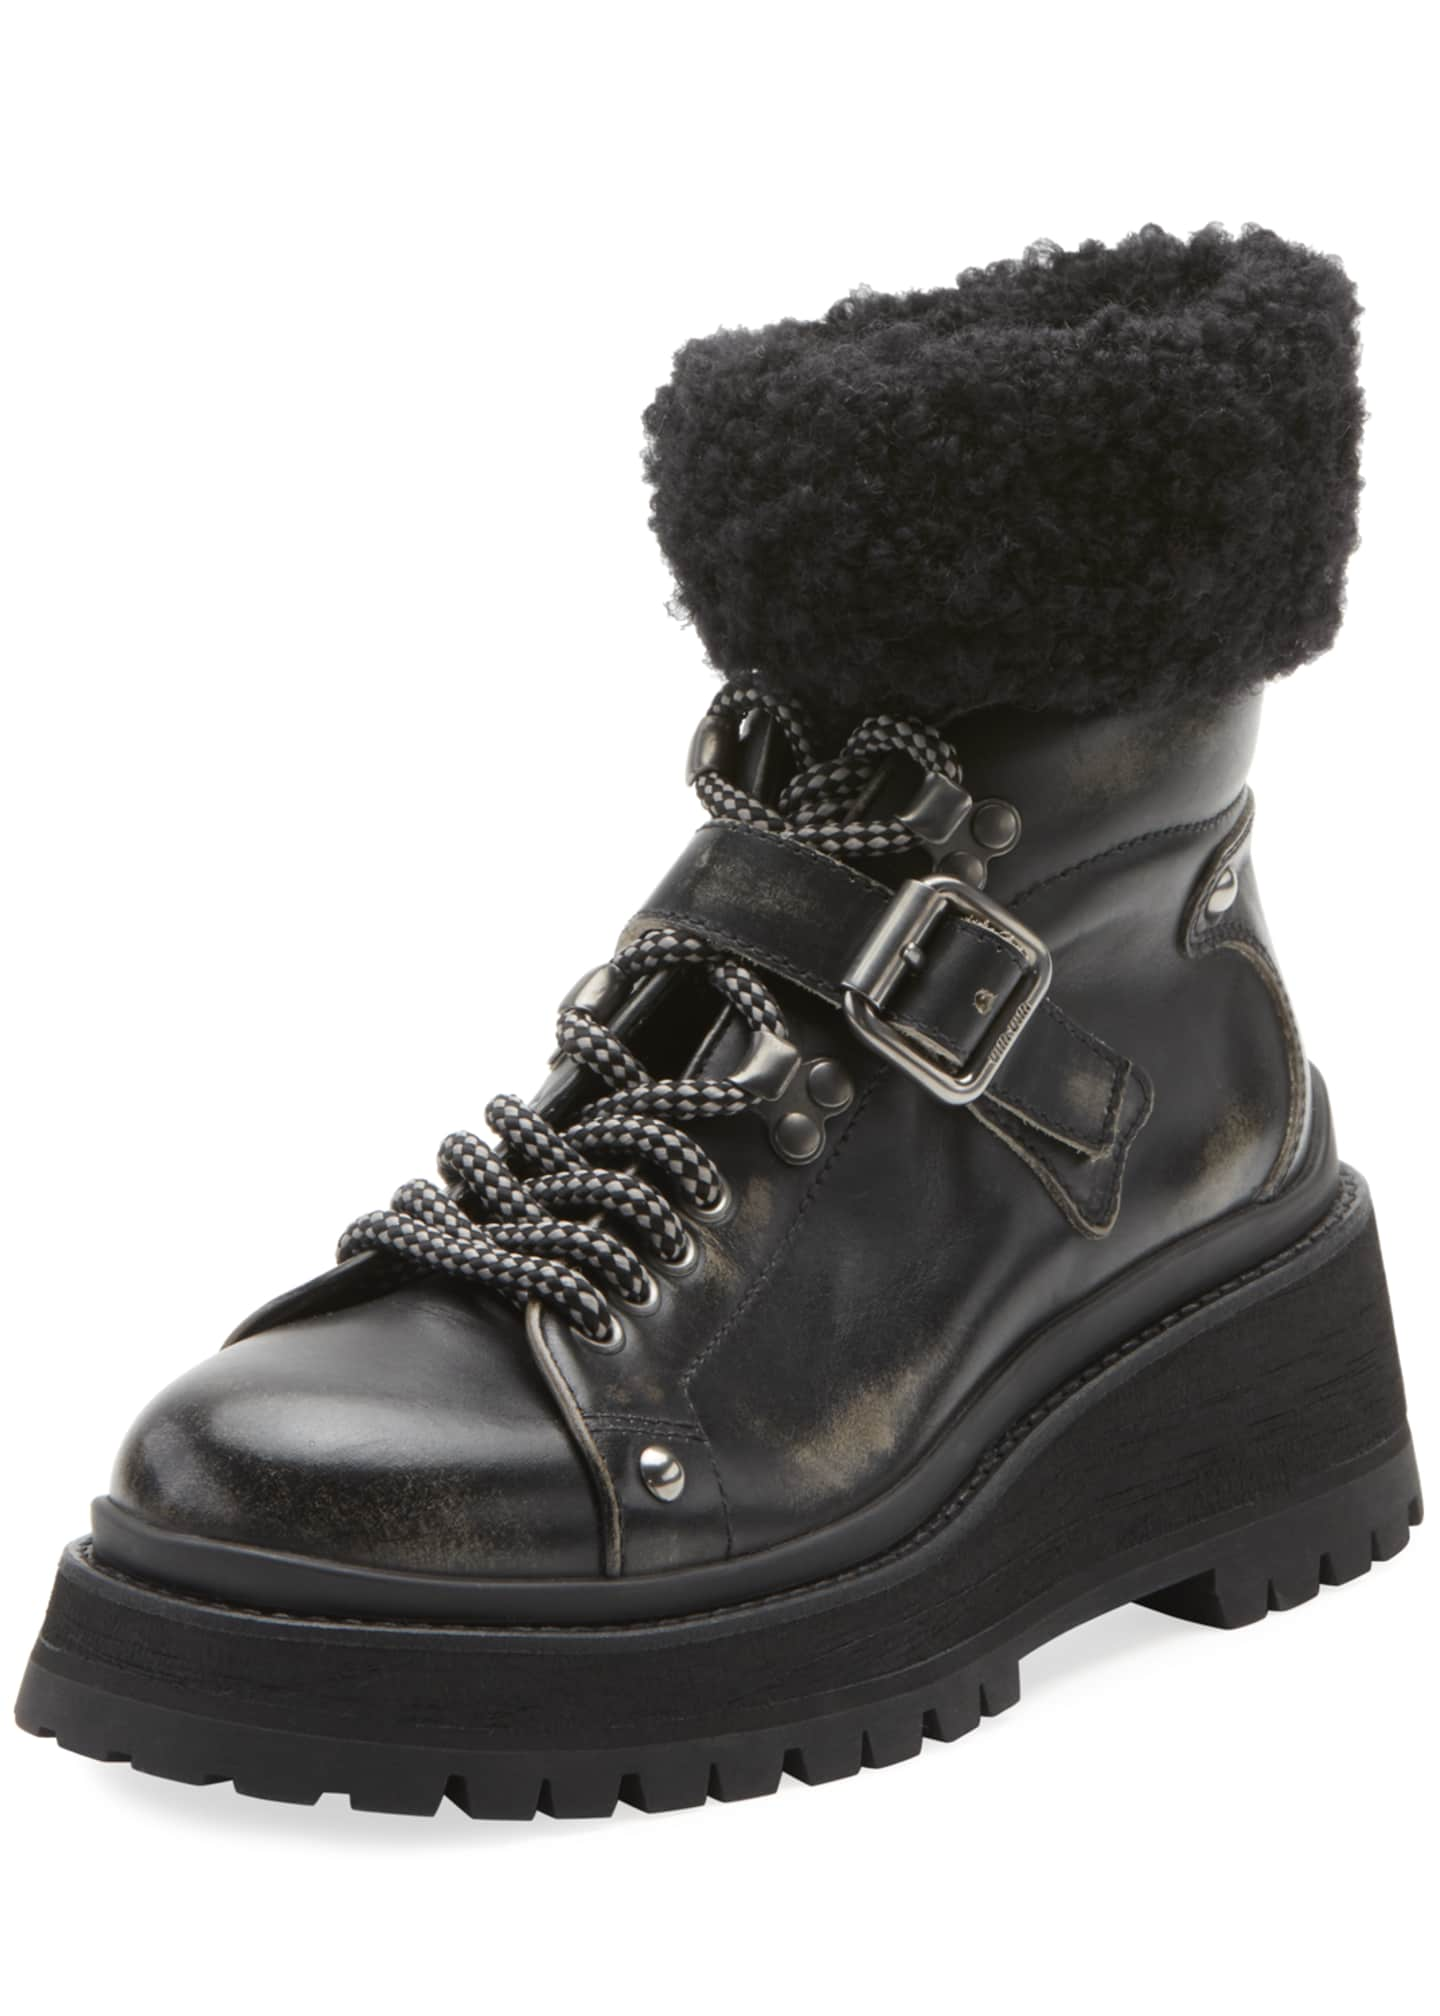 Miu Miu Lace-Up Boots with Buckle and Sock